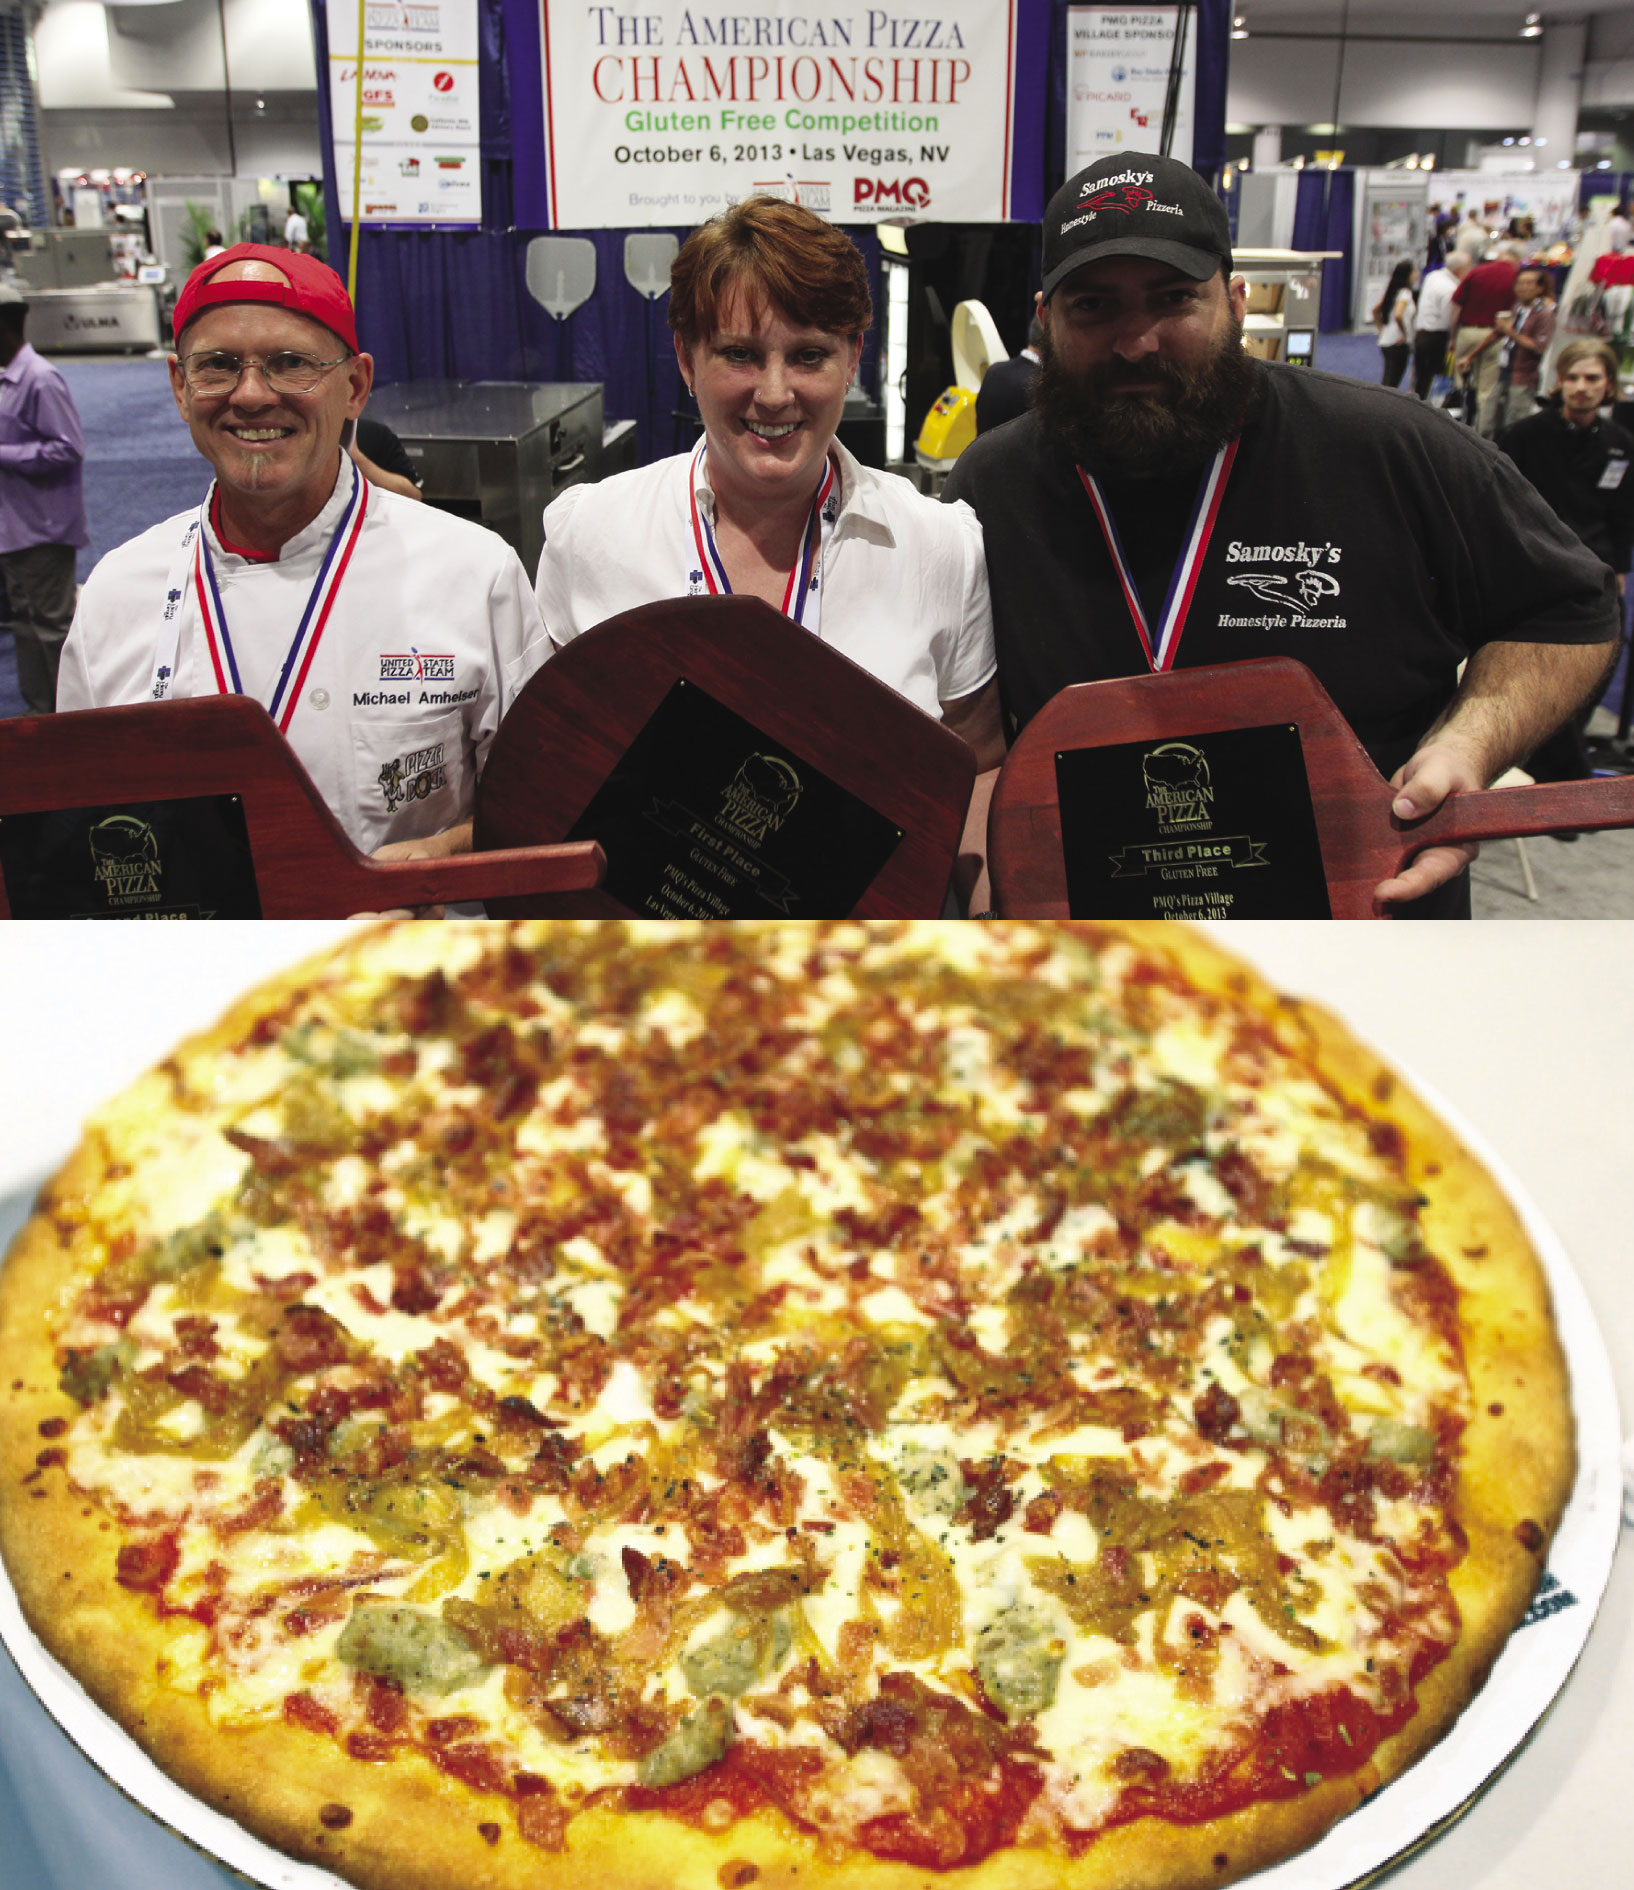 Zook, pictured above with 2nd-place winner Michael Amheiser (left) and 3rd-place winner Jason Samosky (right), took first prize at the 2013 American Pizza Championship with her 3 Meat Pizza featuring pepperoni, sausage and bacon with a provolone/mozzarella blend.